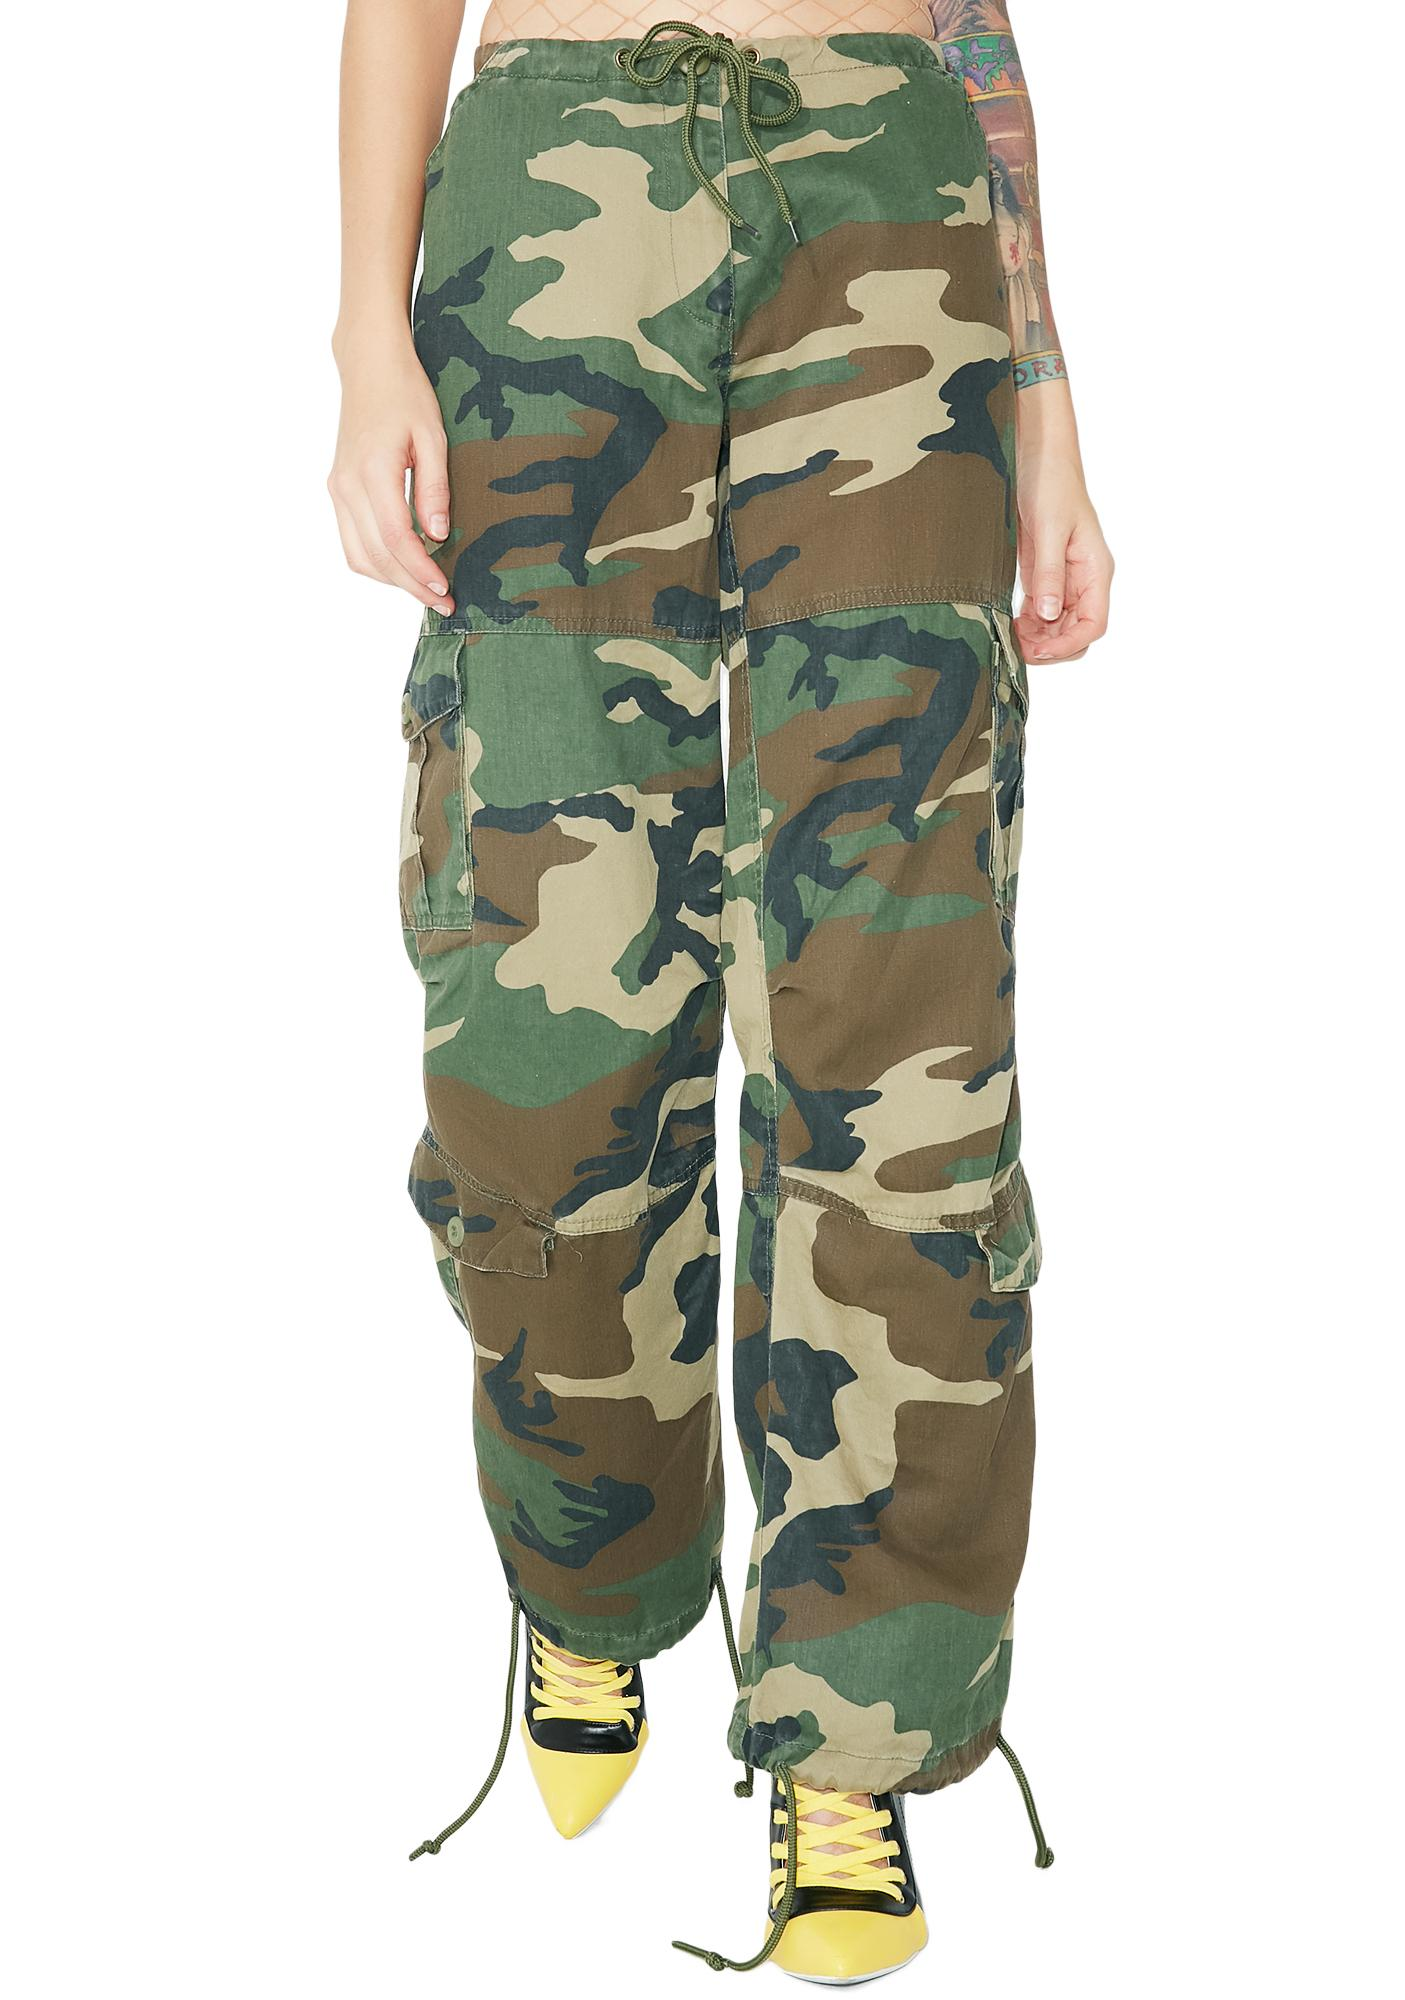 Paratrooper Drawstring Fatigues